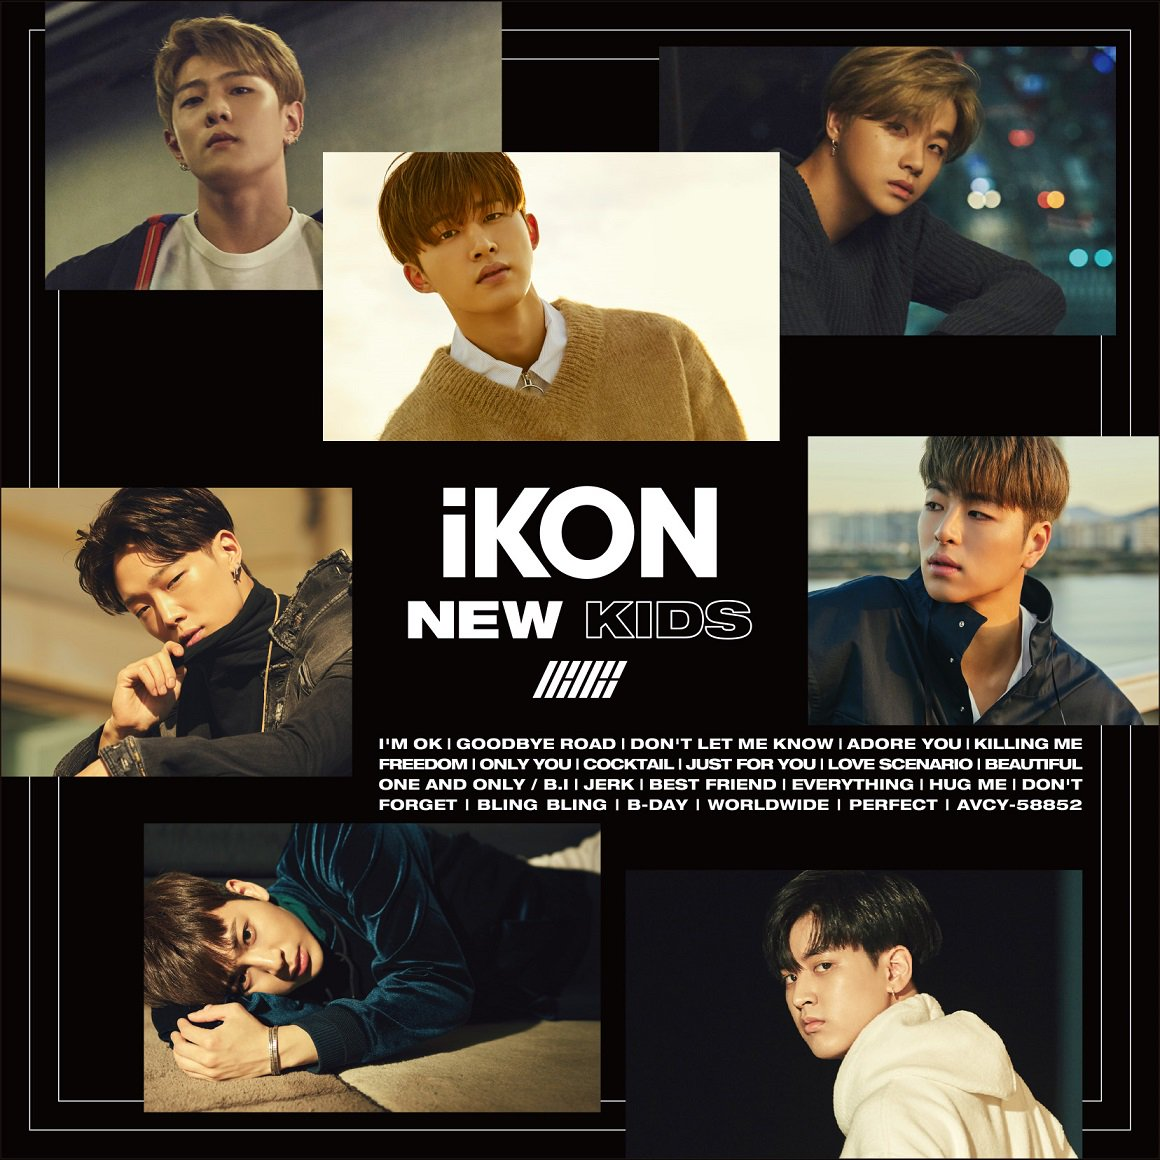 iKON - NEW KIDS Repackage JP ver  Album is Already Available